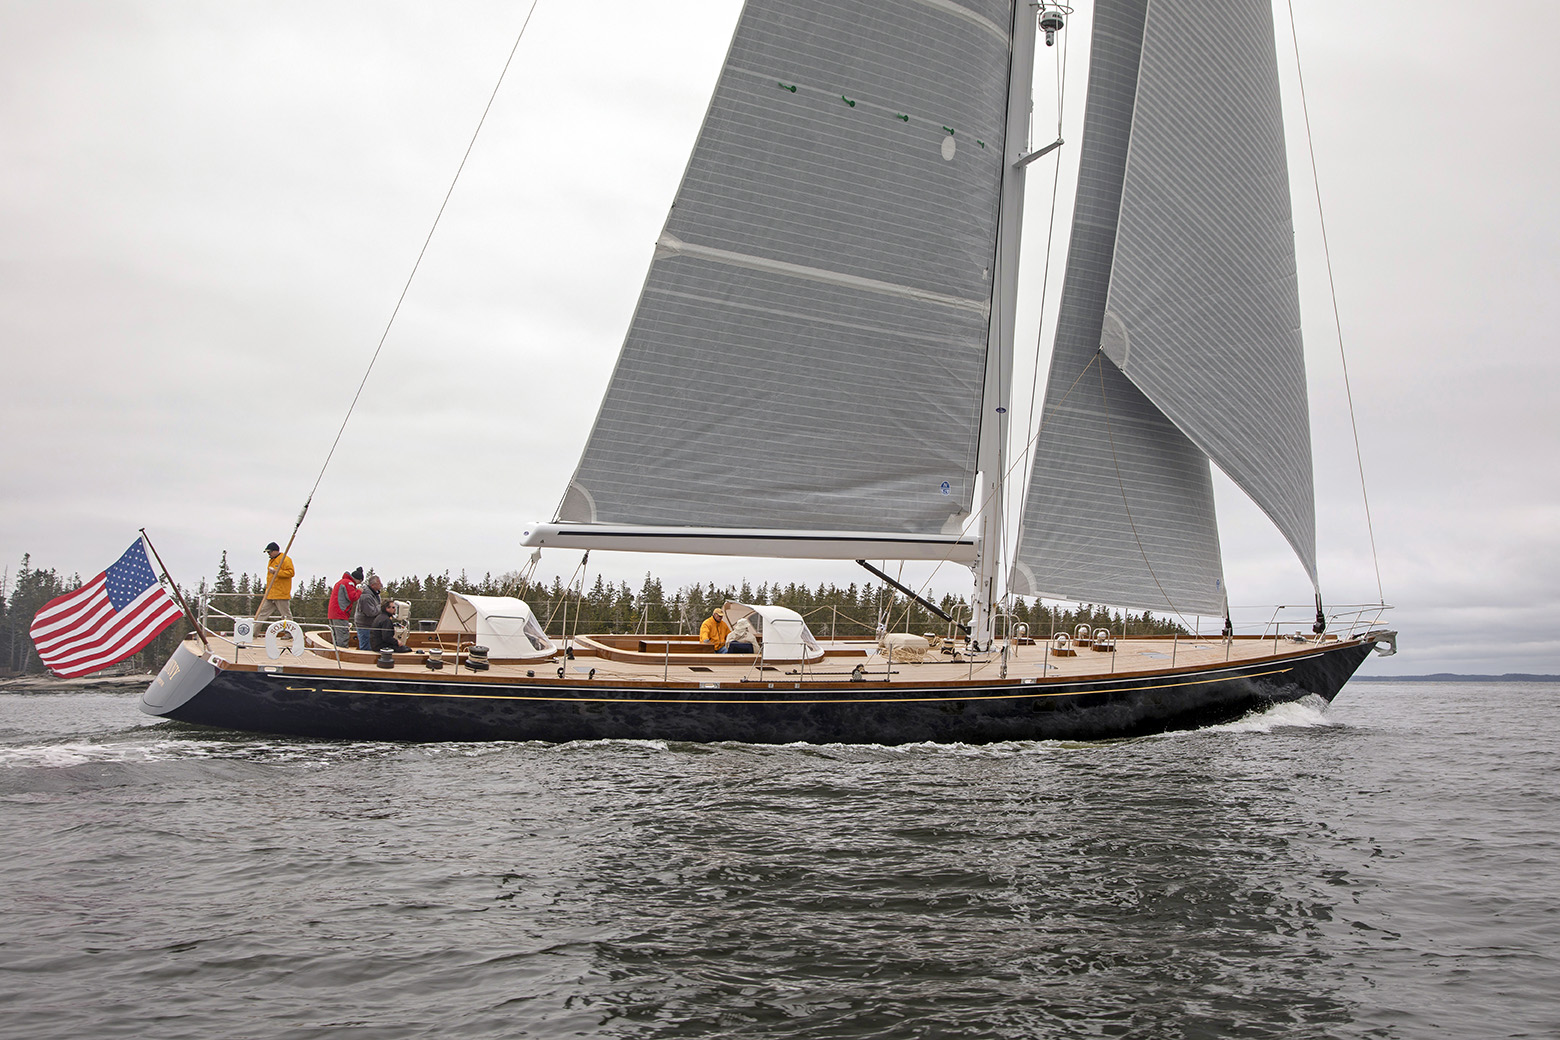 Sonny III, 91-foot Bruce Johnson design built by Brooklin Boat Yard.